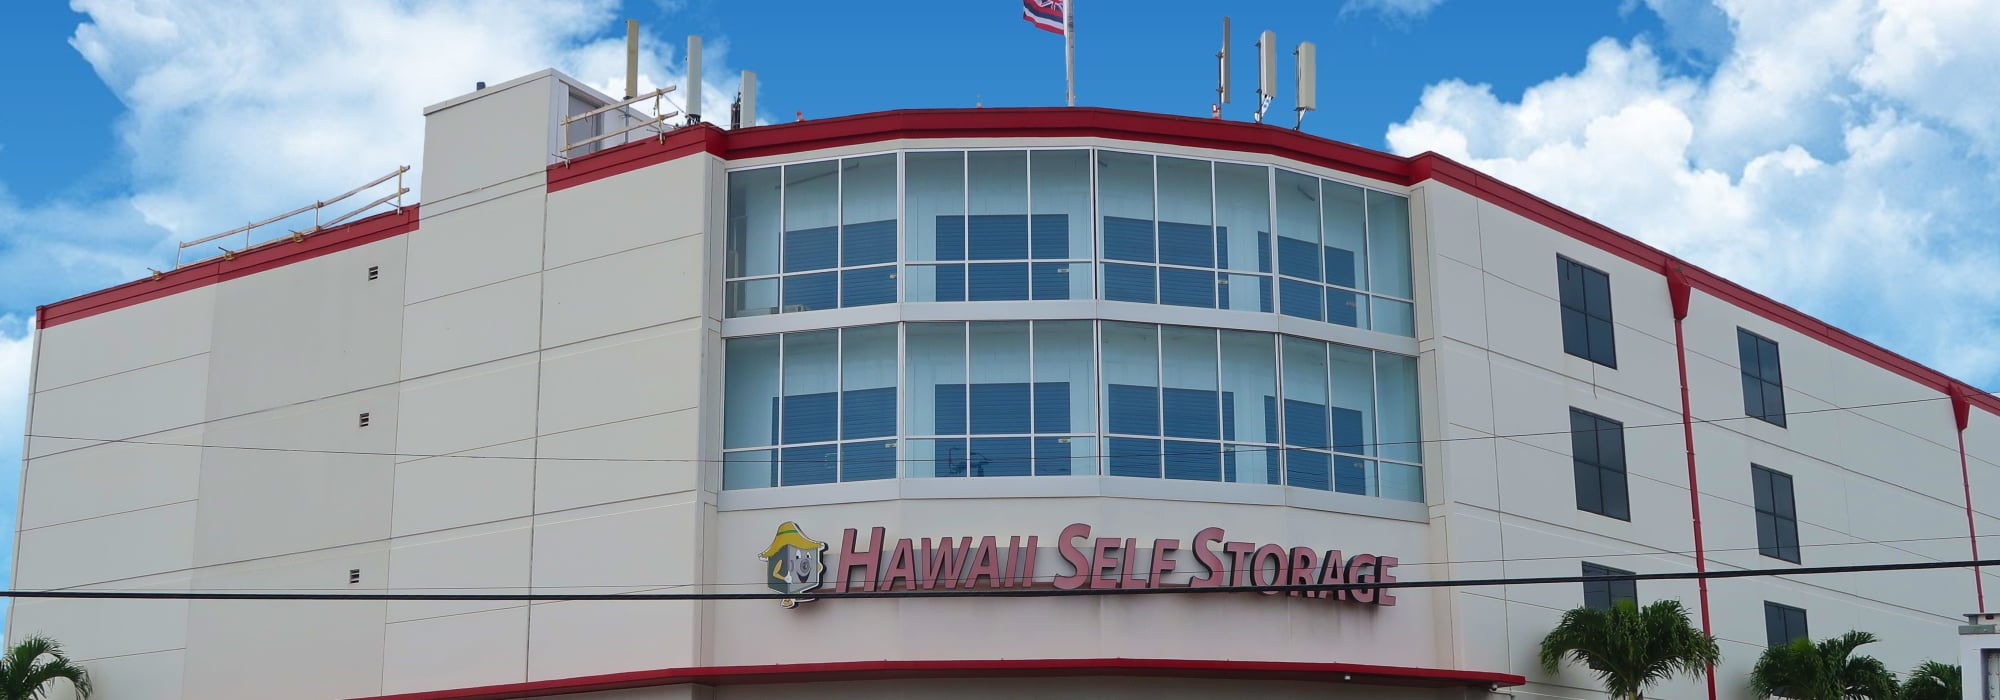 Self storage in Honolulu HI